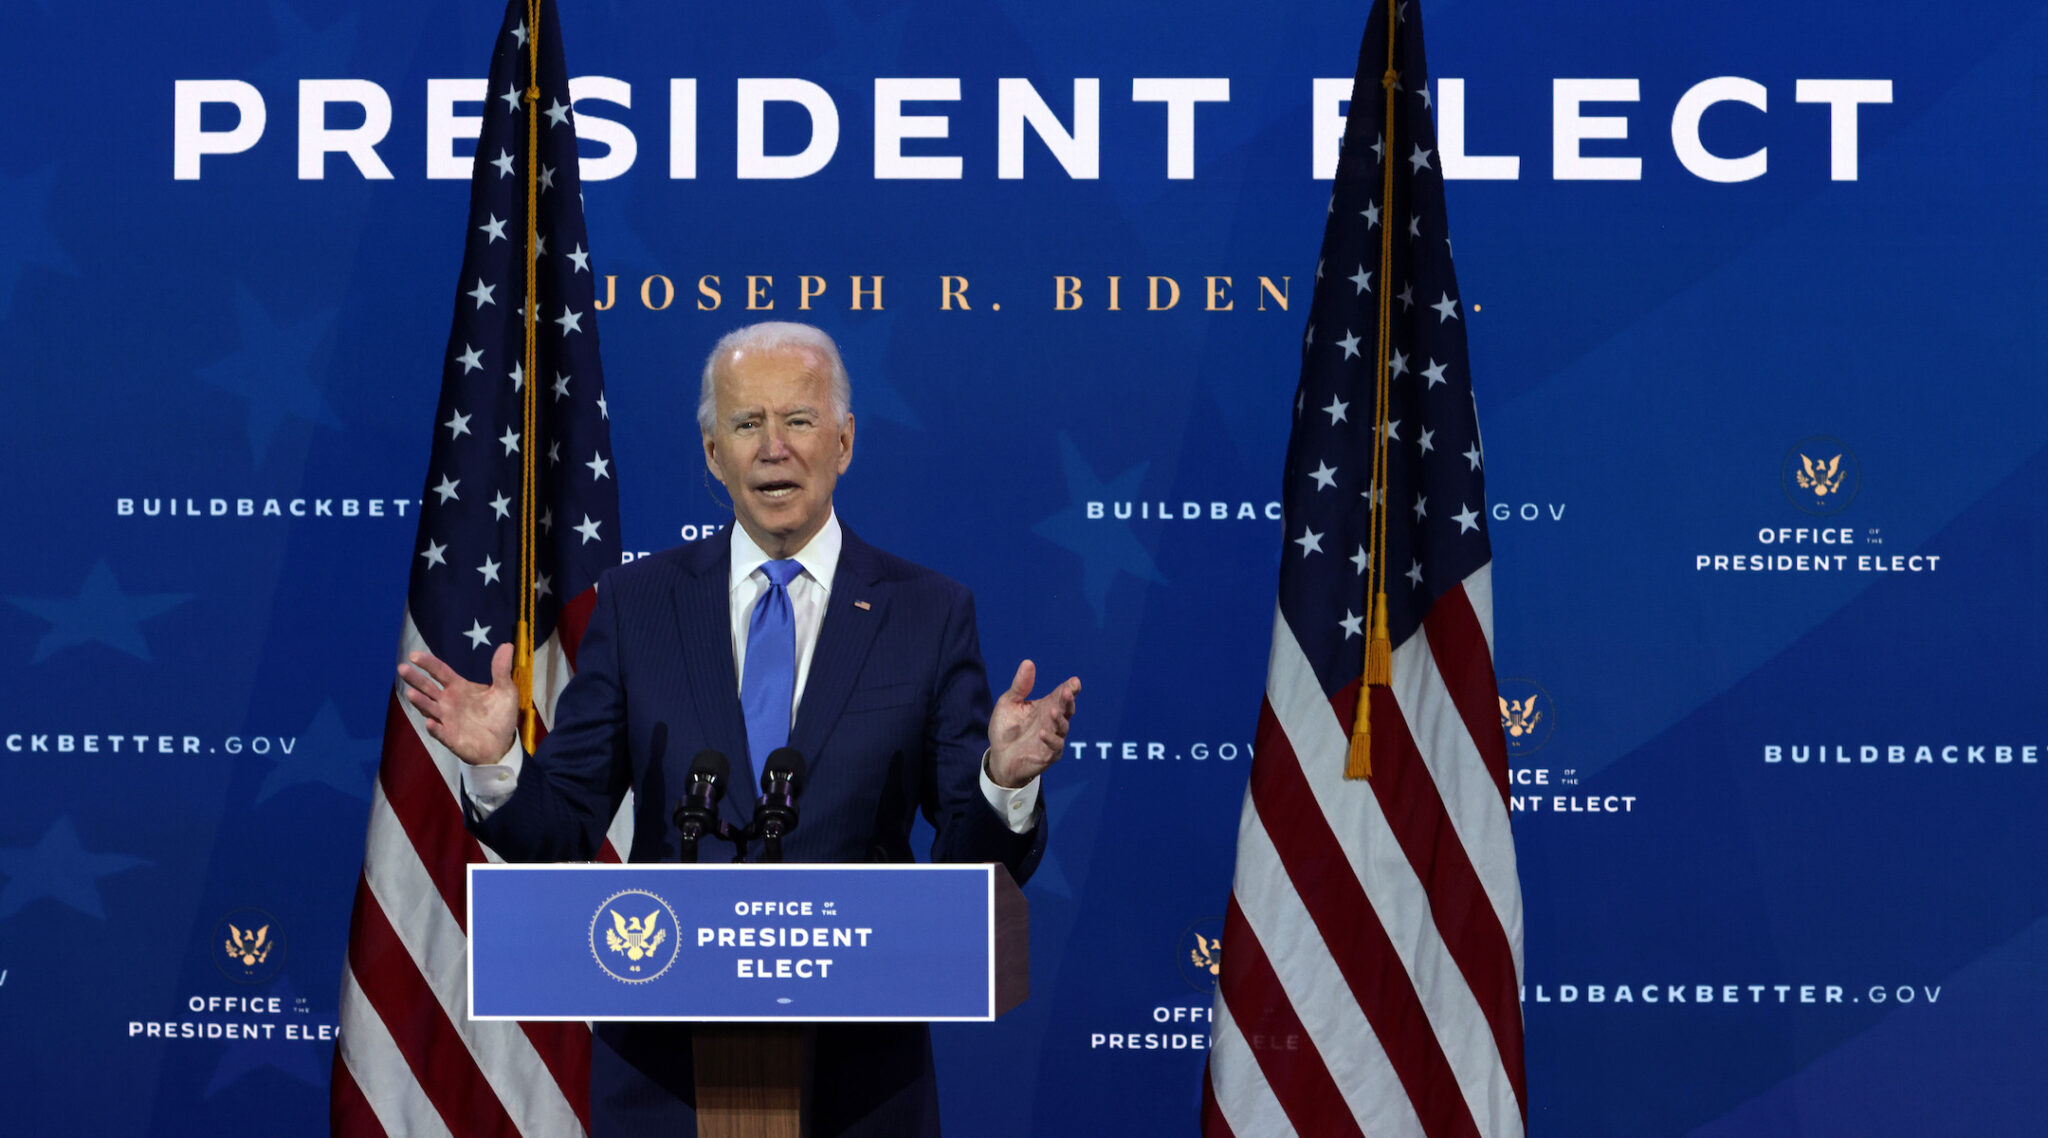 Biden speaks at a podium flanked by American flags